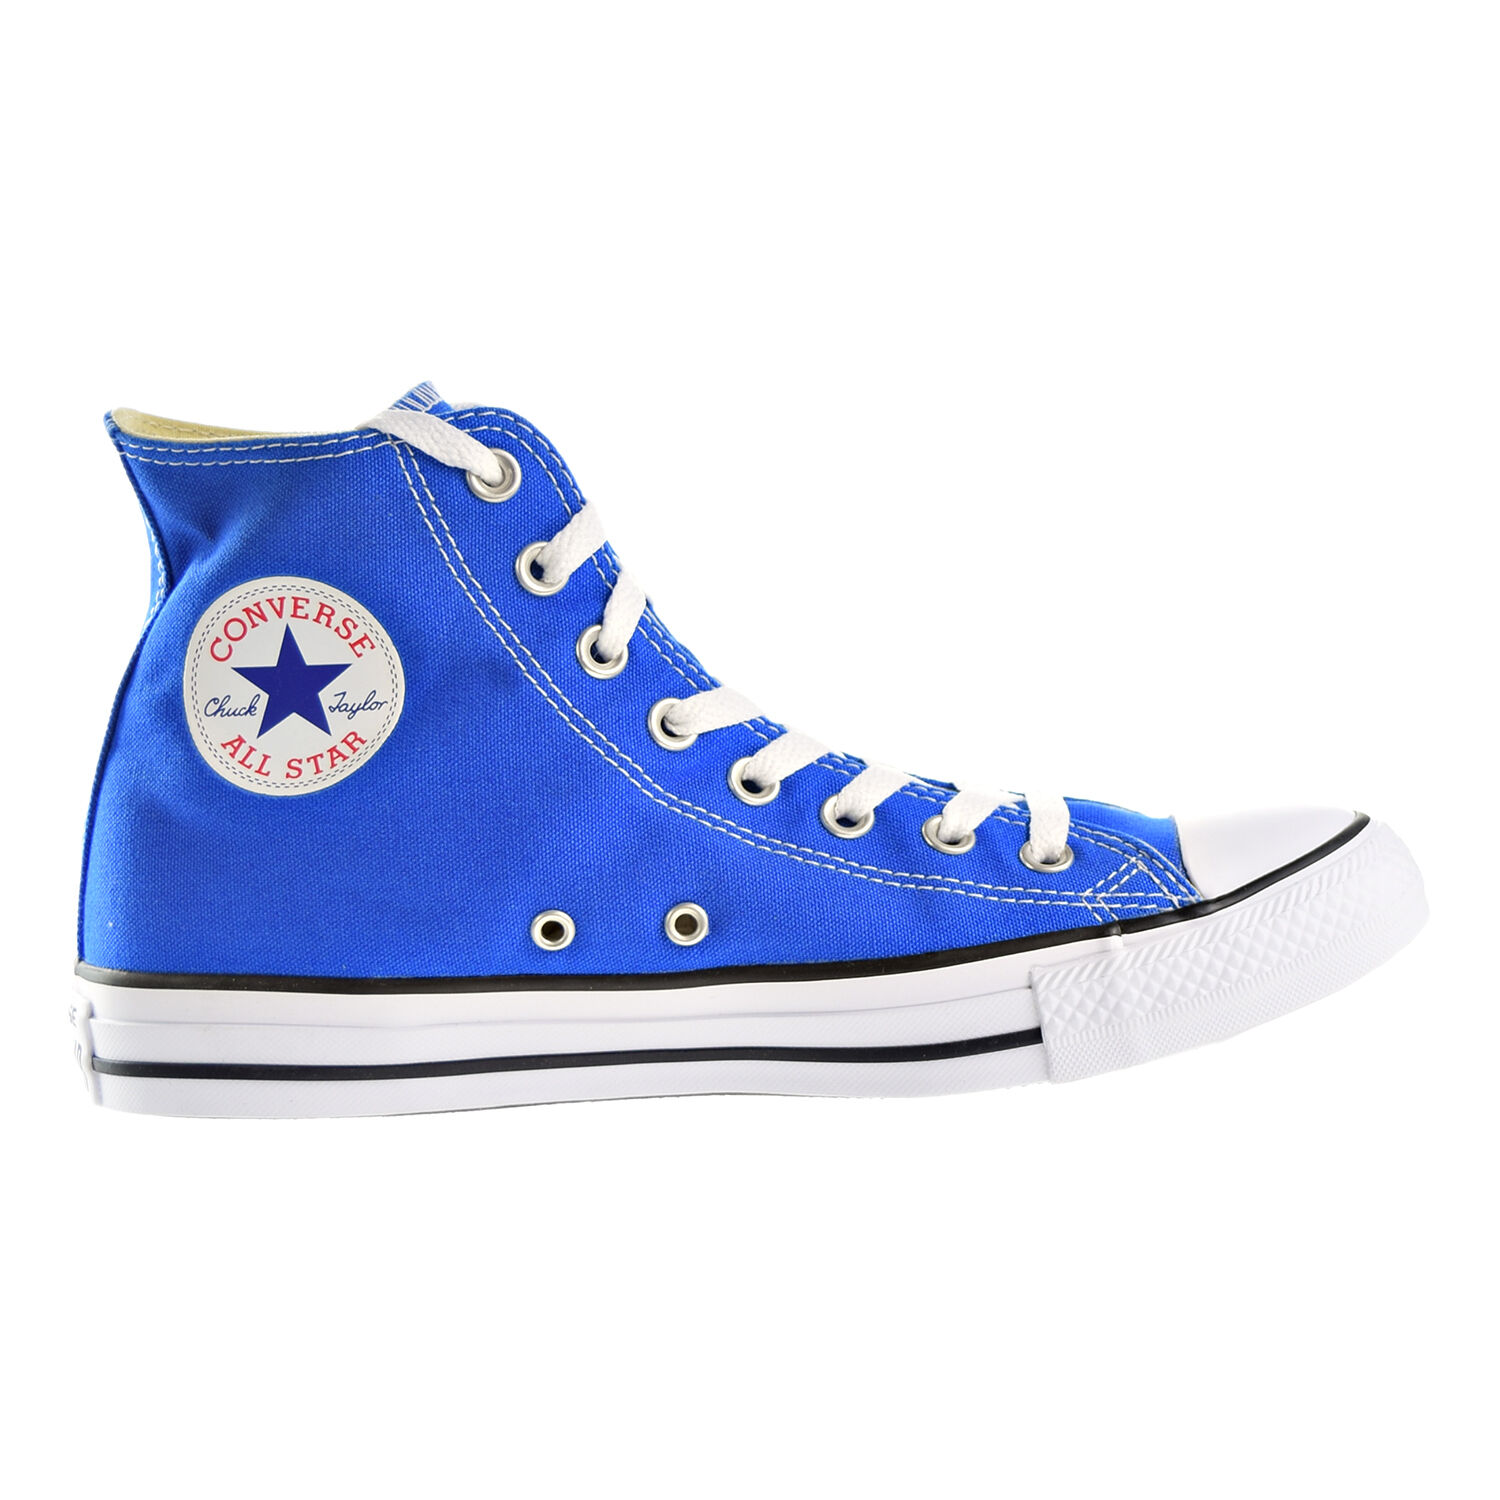 Converse Chuck Taylor All-Star High Unisex Shoes Soar Blue 155566F Scarpe classiche da uomo